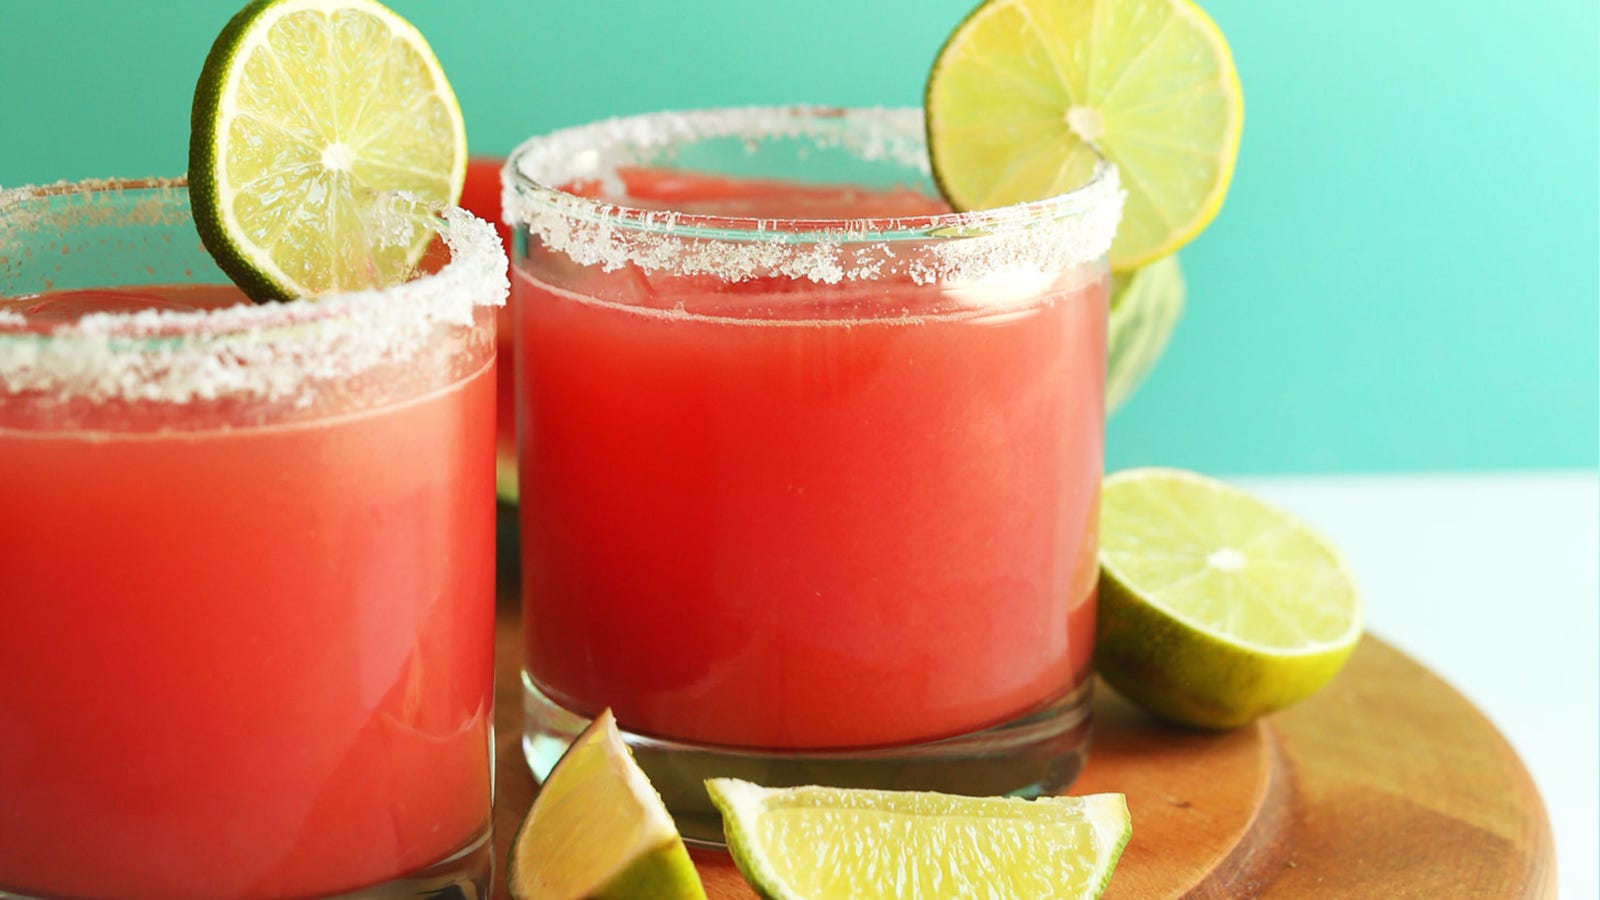 Two watermelon margaritas, with salted rims and lemon wheel garnishes.